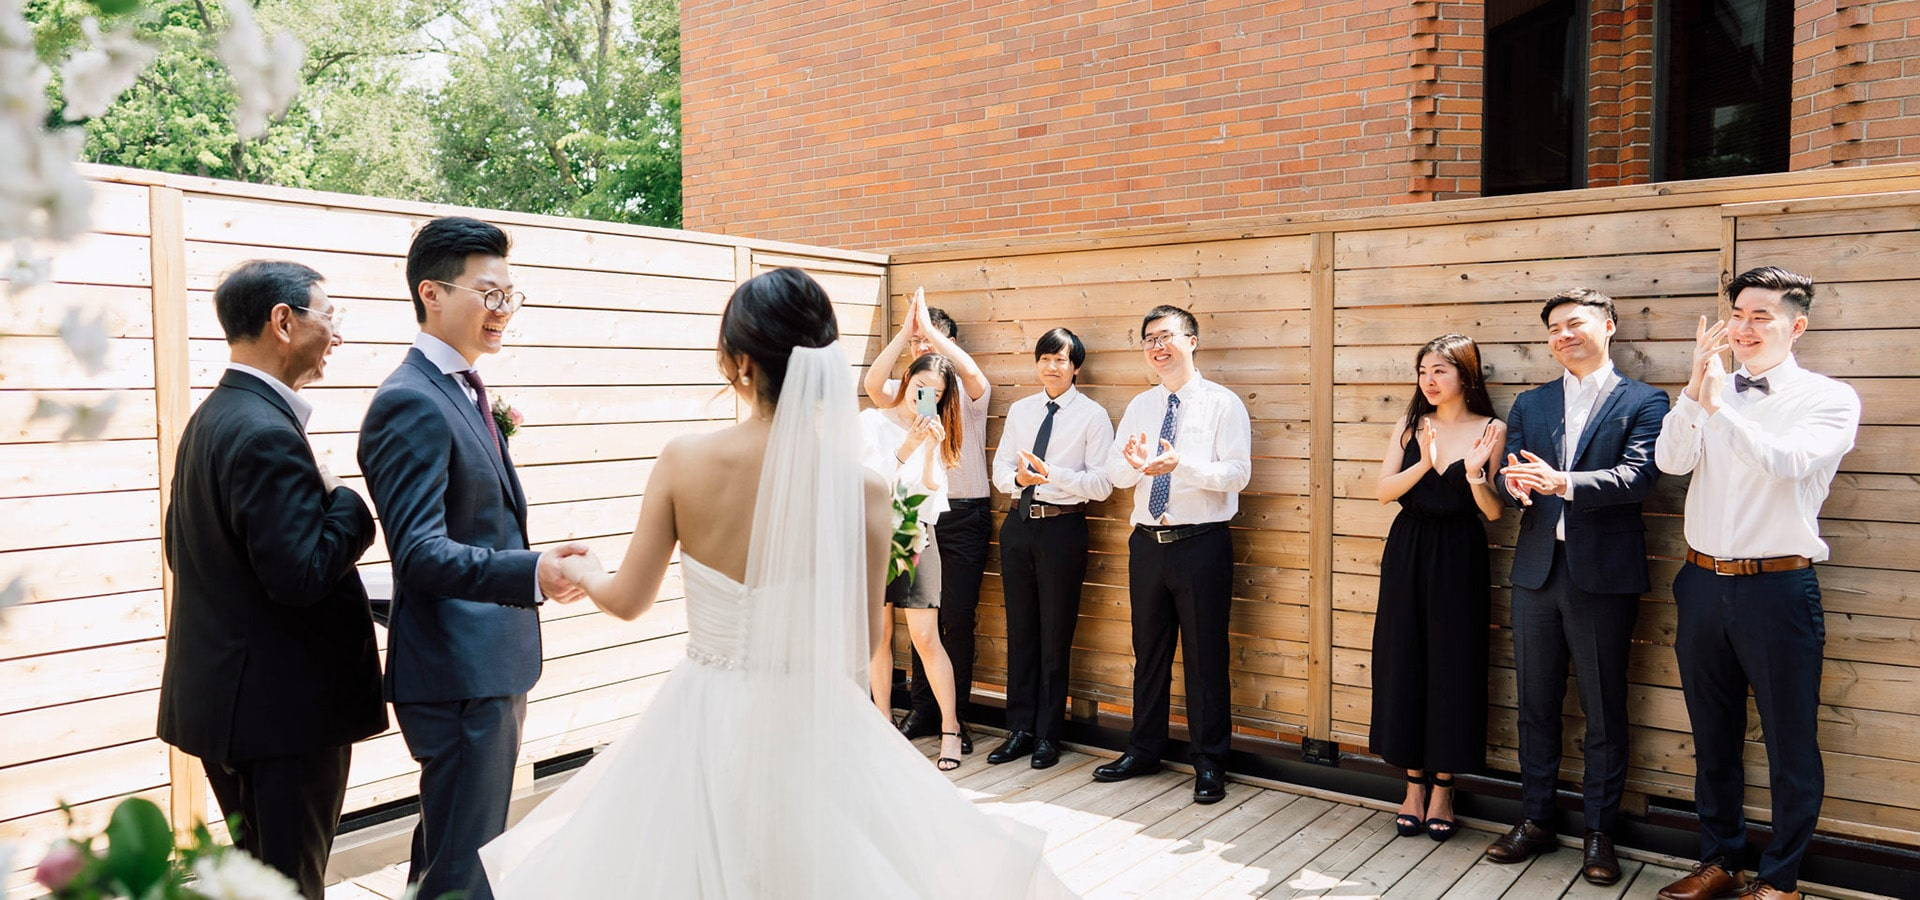 Hero image for Elope Now, Party Later: The COVID-19 Trend of Two-Part Weddings